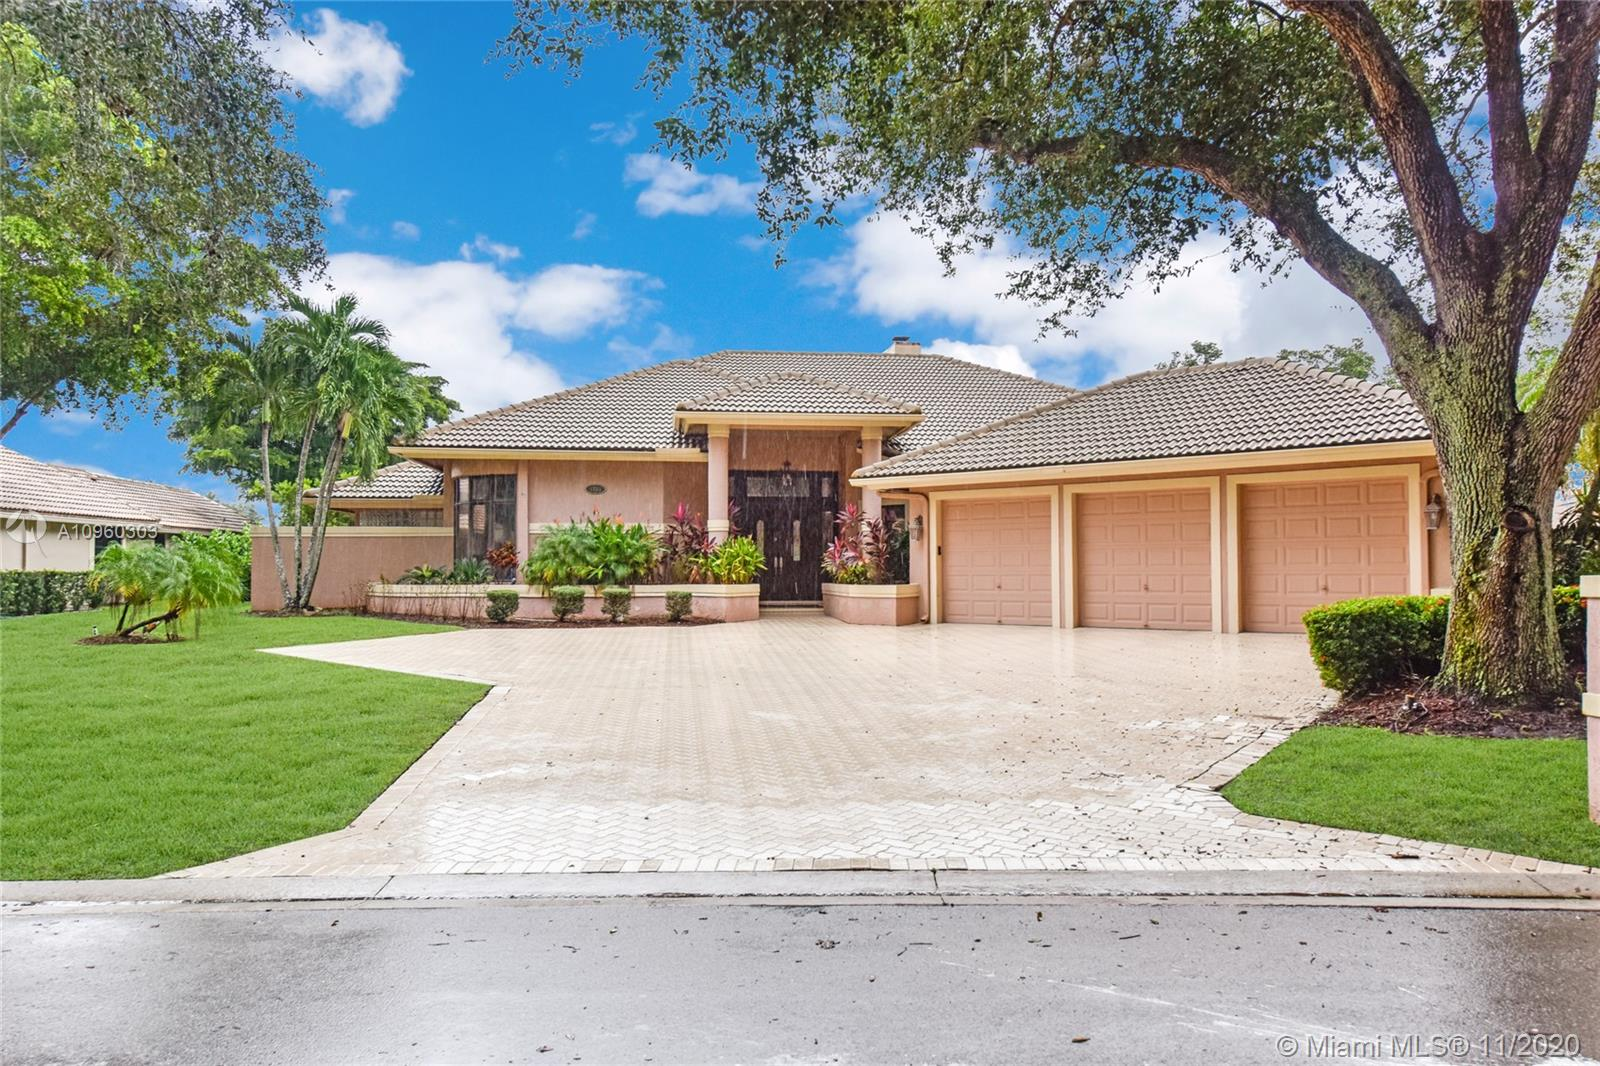 Property for sale at 1755 Eagle Trace Blvd, Coral Springs,  Florida 33071